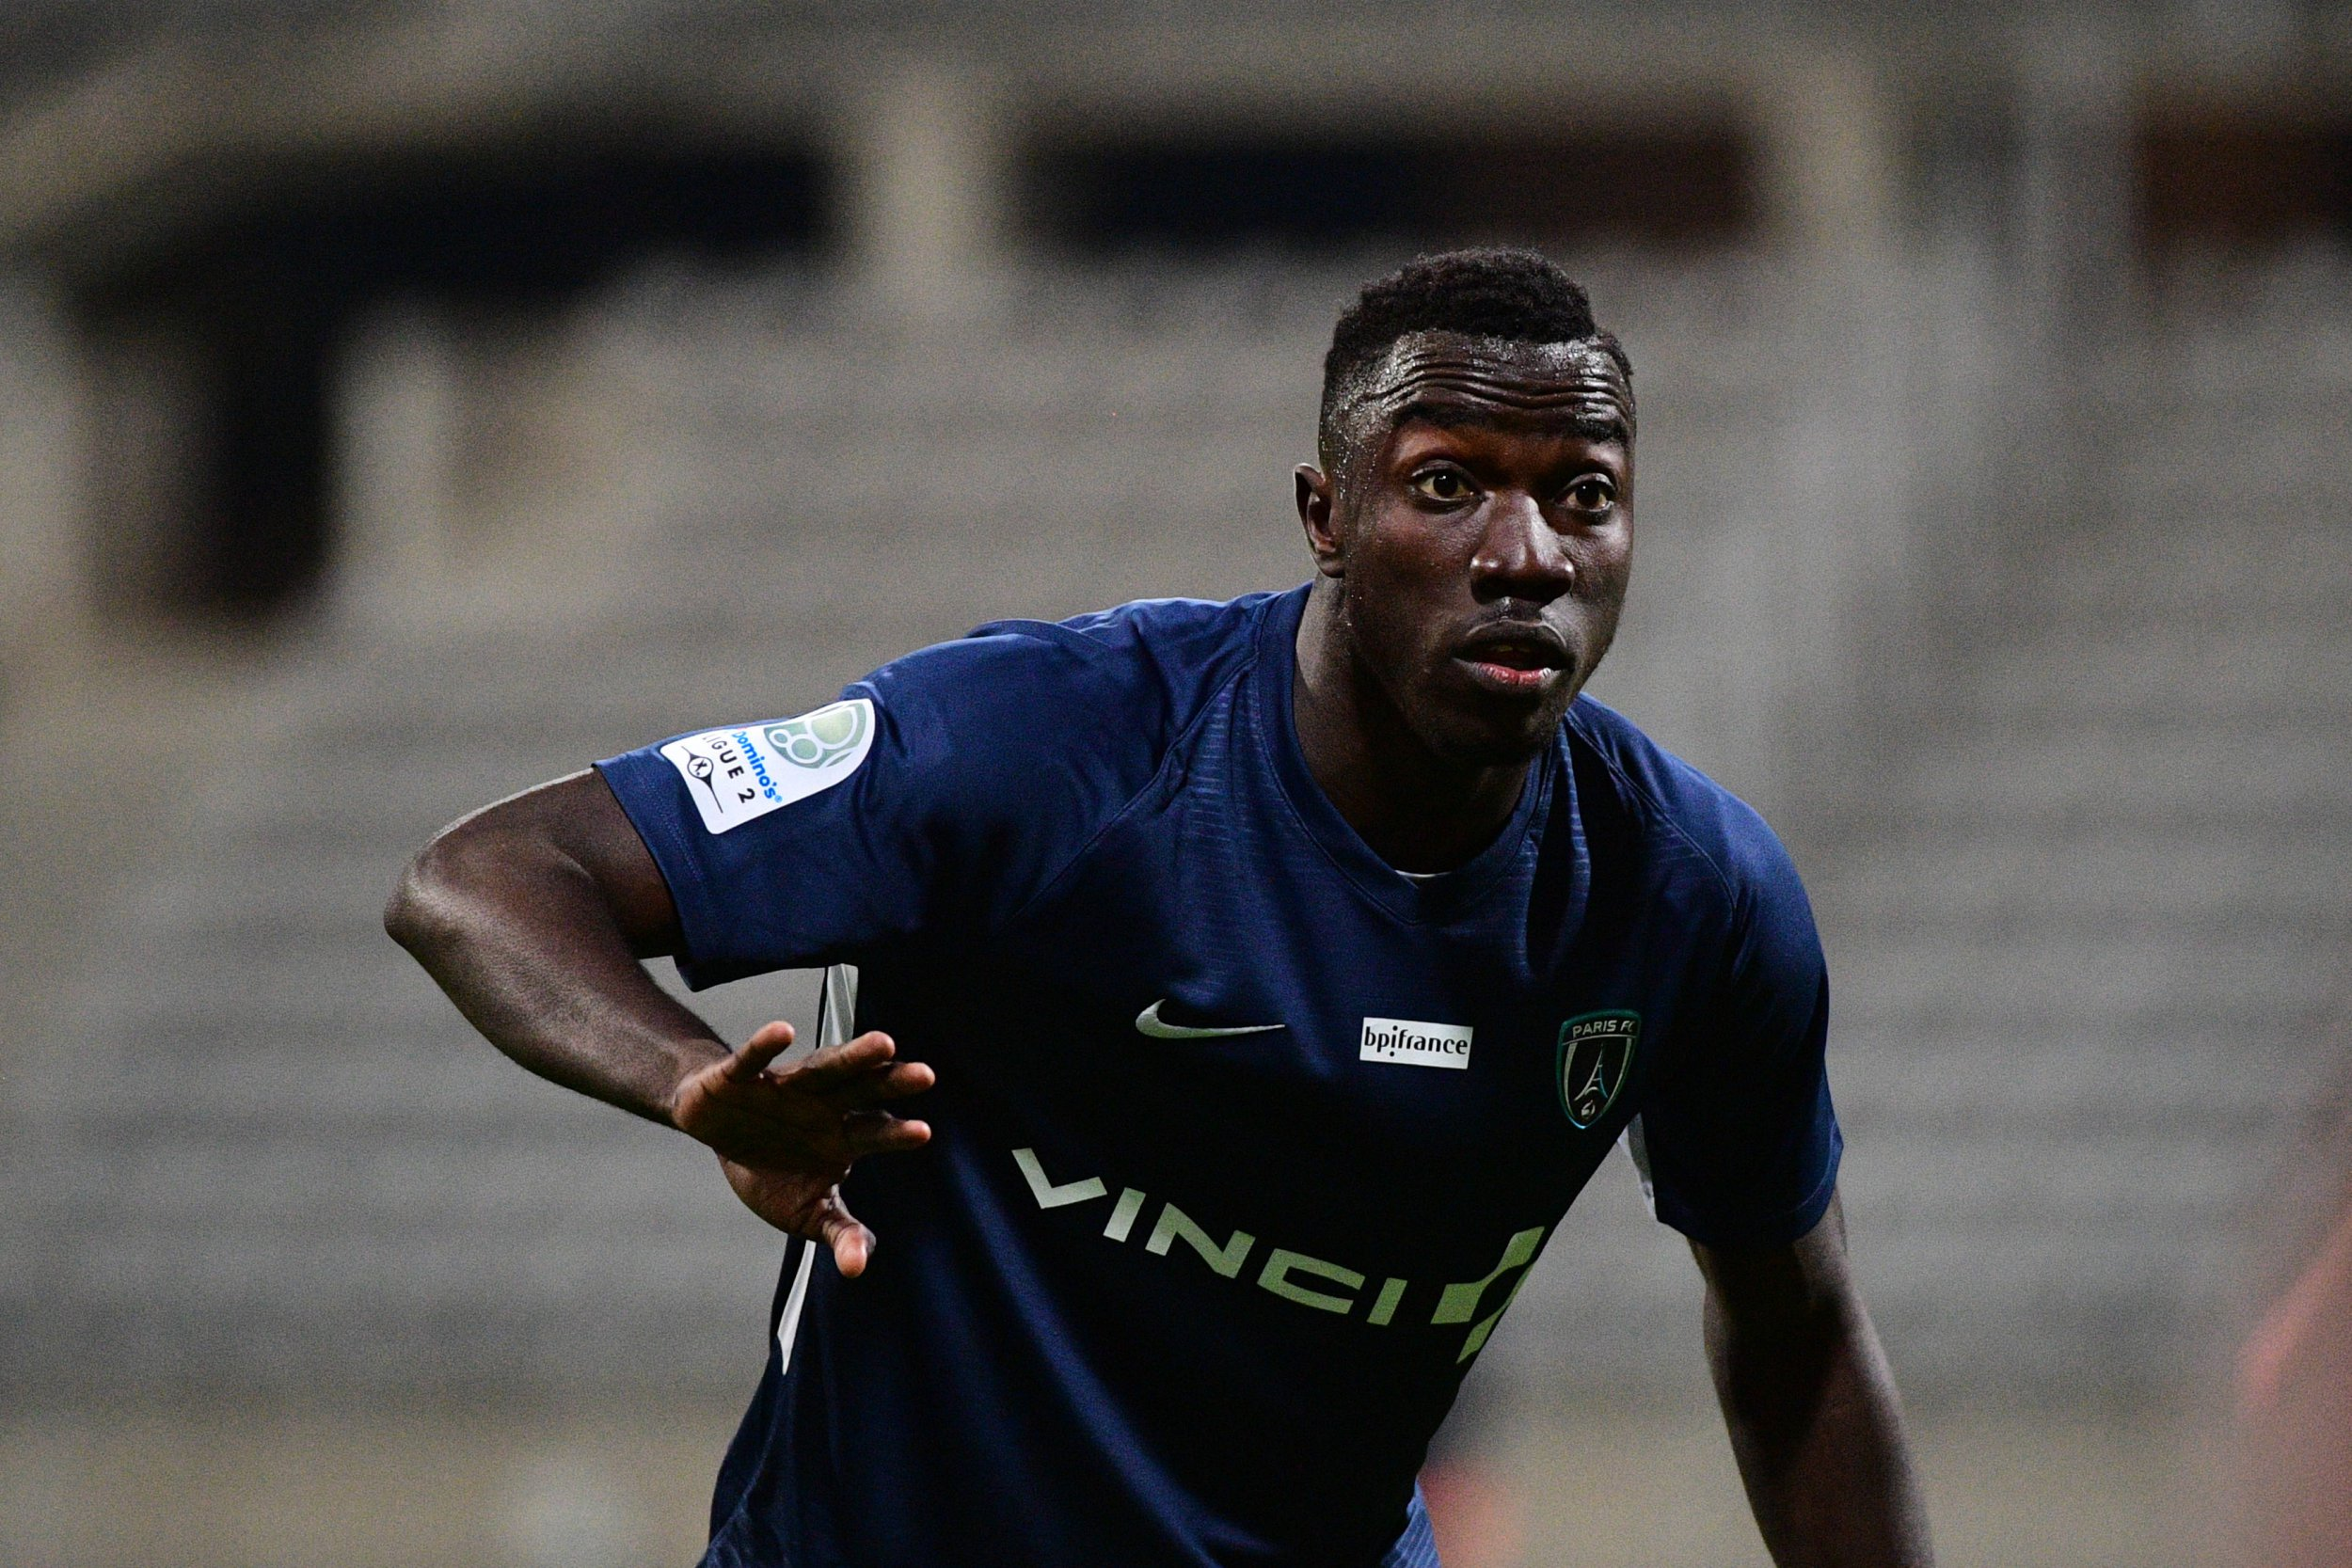 Silas Wamangituka of Paris FC during the Ligue 2 match between Paris FC and AJ Auxerre at Stade Charlety on March 29, 2019 in Paris, France. (Photo by Dave Winter/Icon Sport via Getty Images)